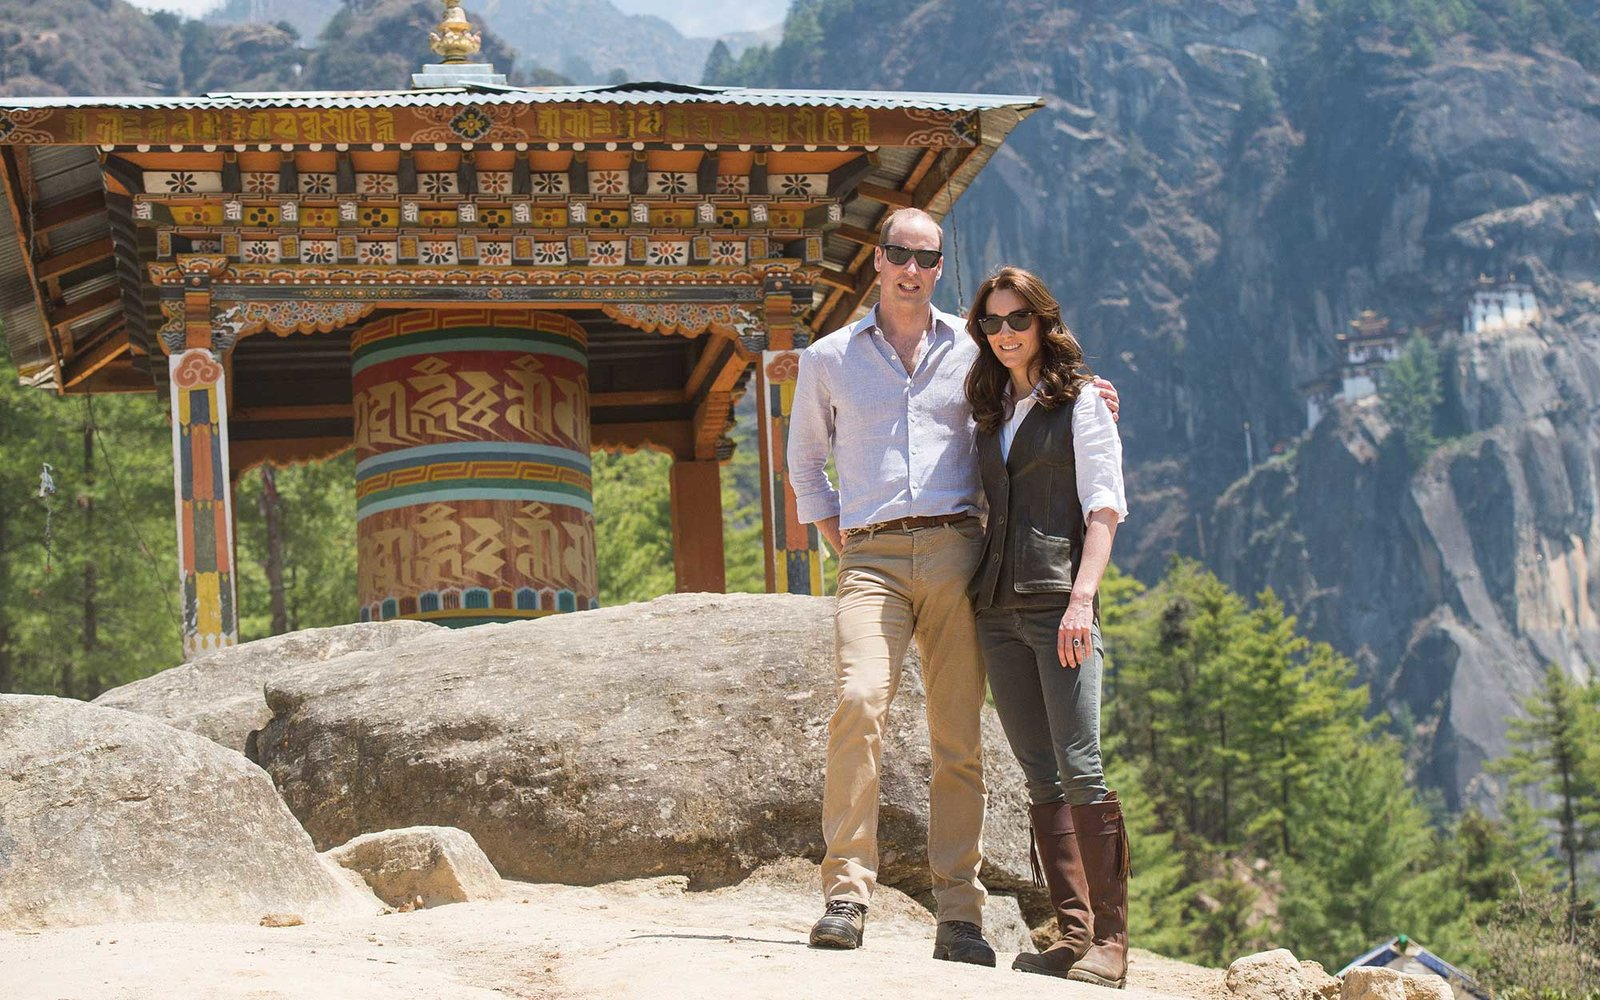 PARO, BHUTAN - APRIL 15:  Prince William, Duke of Cambridge and Catherine, Duchess of Cambridge half way on their hike to Paro Taktsang, the Tiger's Nest monastery on April 15, 2016 in Paro, Bhutan.  (Photo by UK Press Pool/Getty Images)